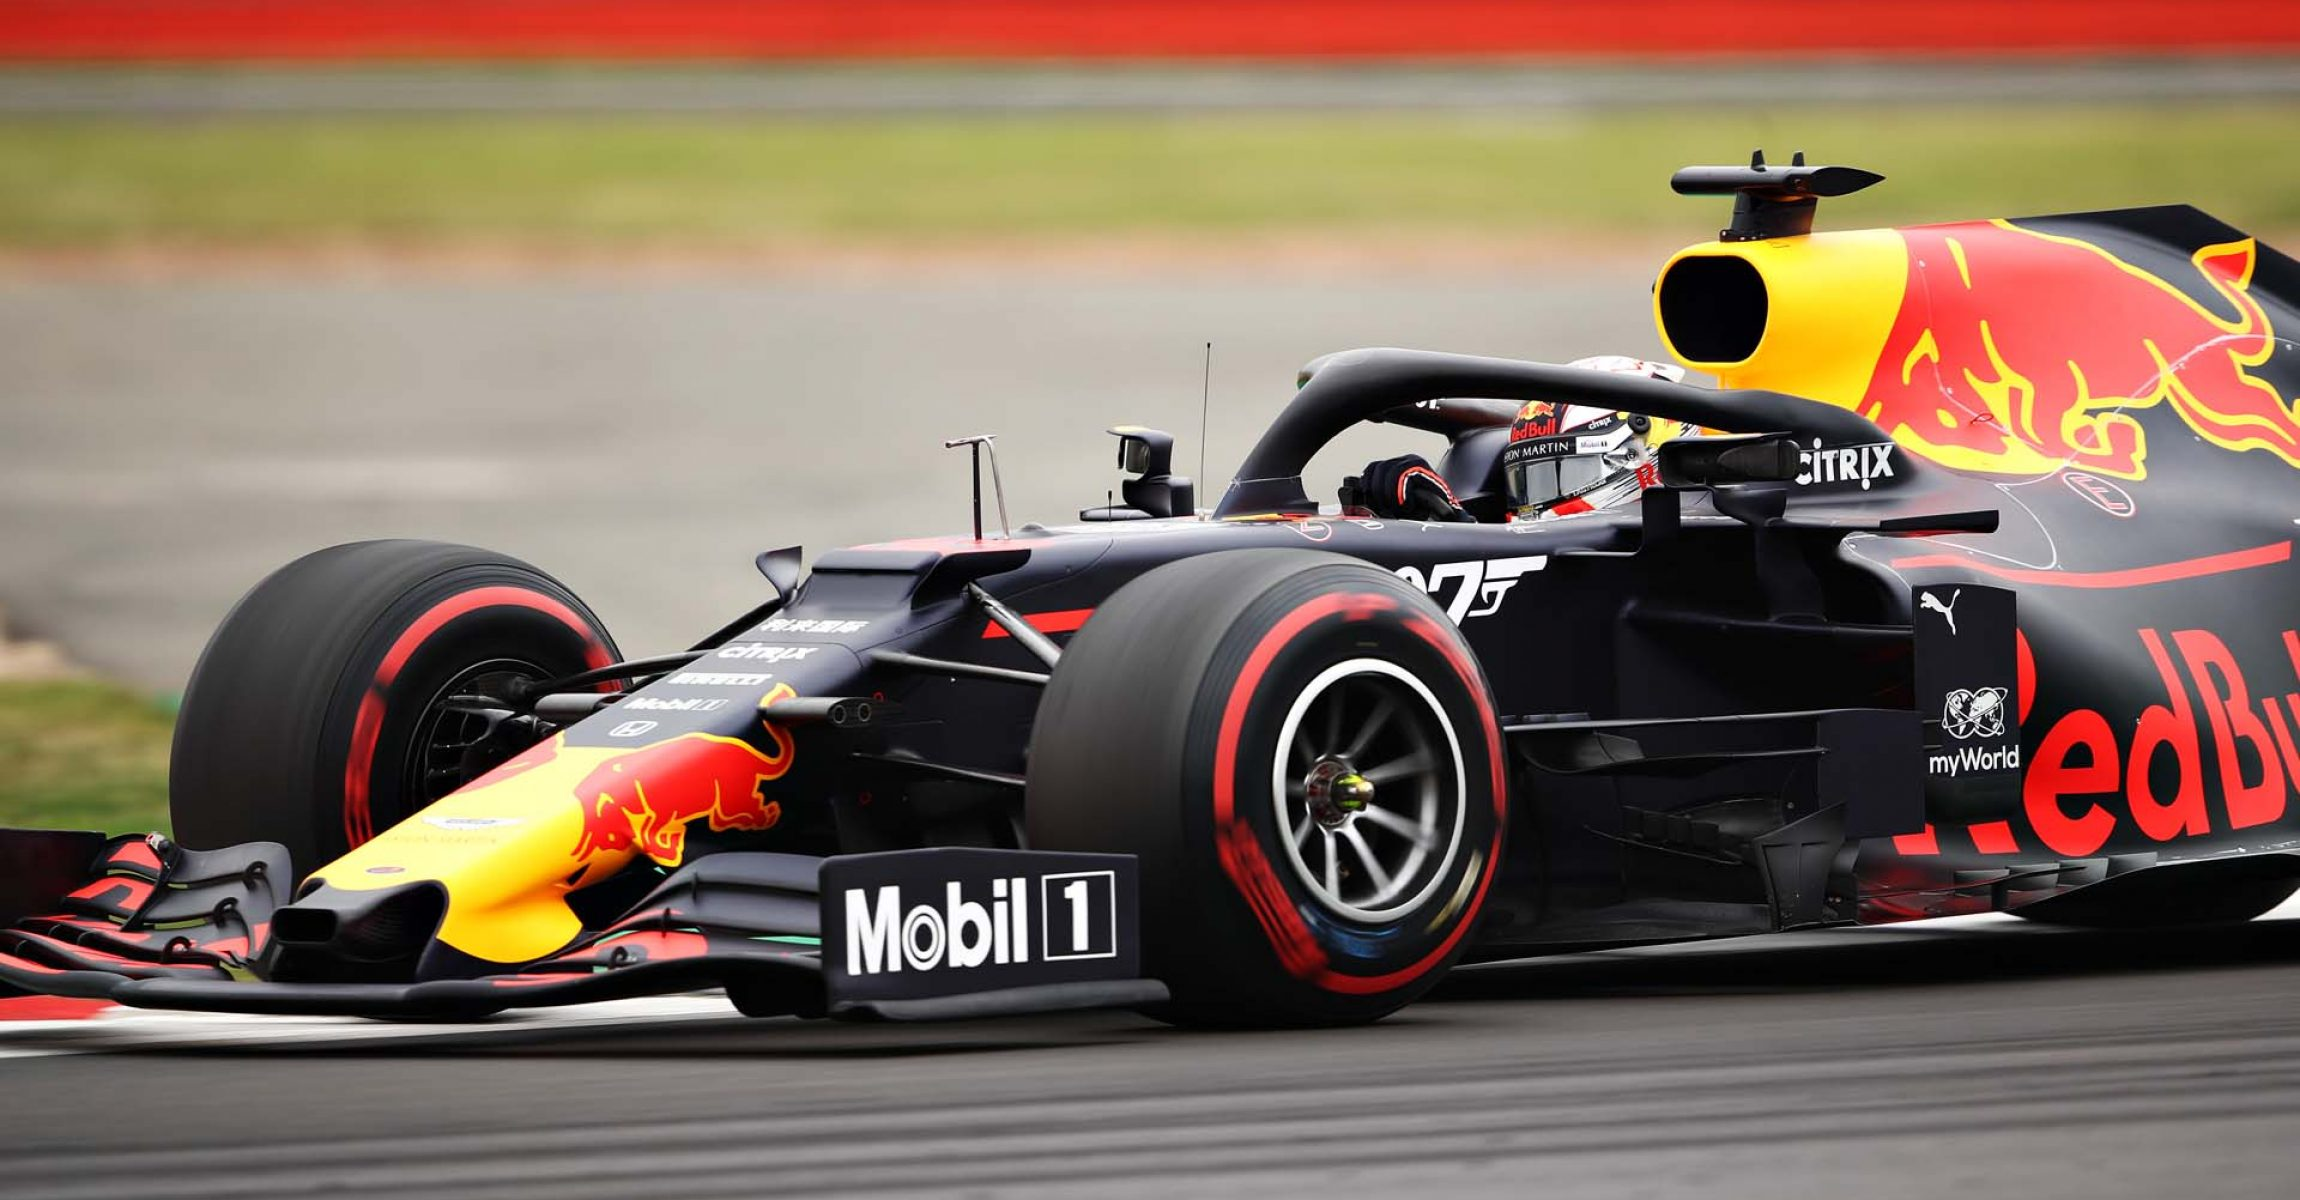 NORTHAMPTON, ENGLAND - JULY 13: Max Verstappen of the Netherlands driving the (33) Aston Martin Red Bull Racing RB15 on track during final practice for the F1 Grand Prix of Great Britain at Silverstone on July 13, 2019 in Northampton, England. (Photo by Bryn Lennon/Getty Images) // Getty Images / Red Bull Content Pool // AP-1ZXER4QM91W11 // Usage for editorial use only // Please go to www.redbullcontentpool.com for further information. //